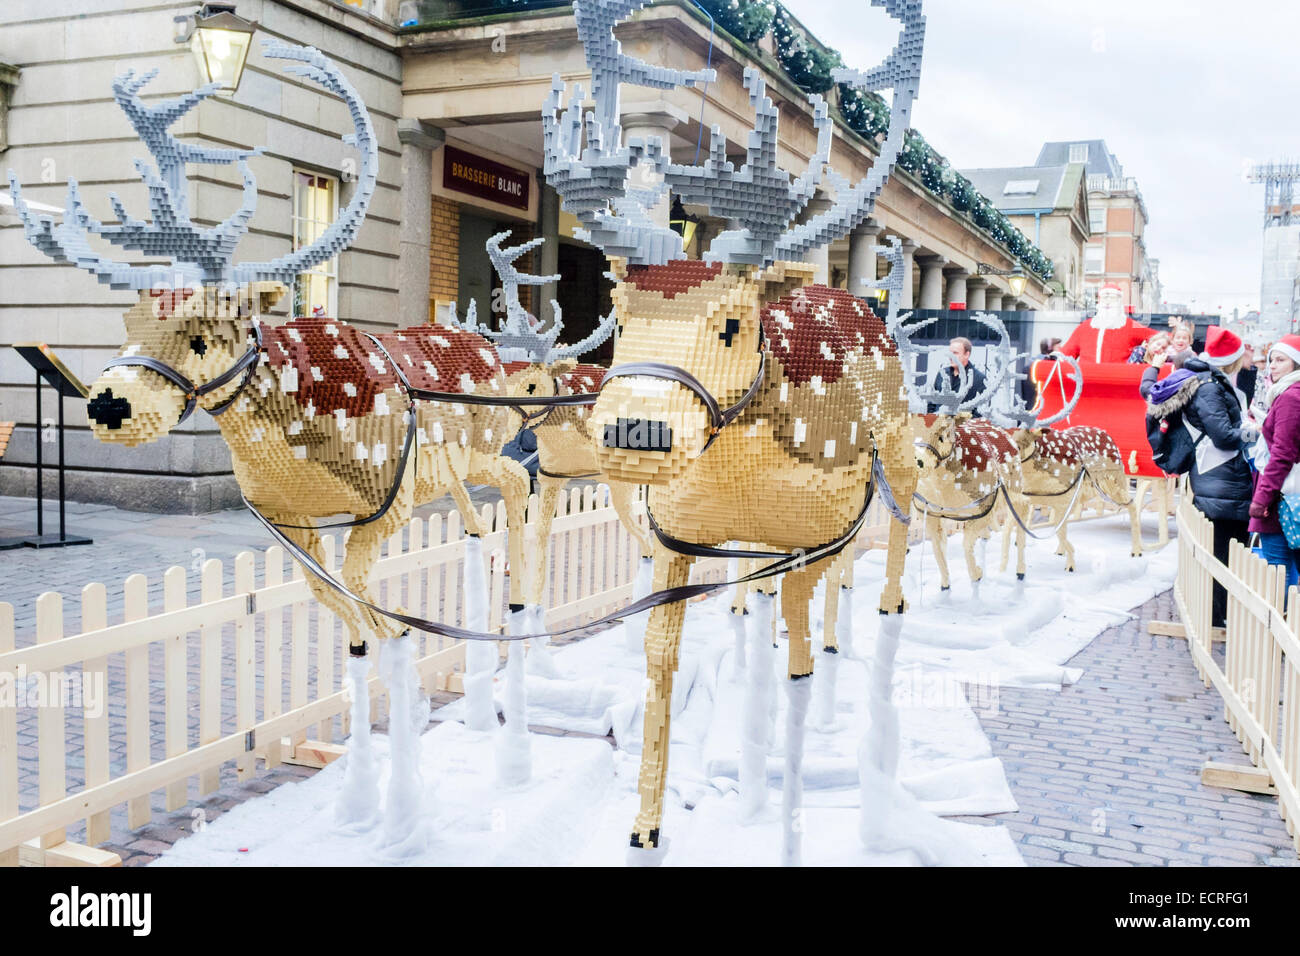 A full-size Santa's sleigh and reindeer made from 700,000 Lego bricks, Covent Garden, London, UK - Stock Image